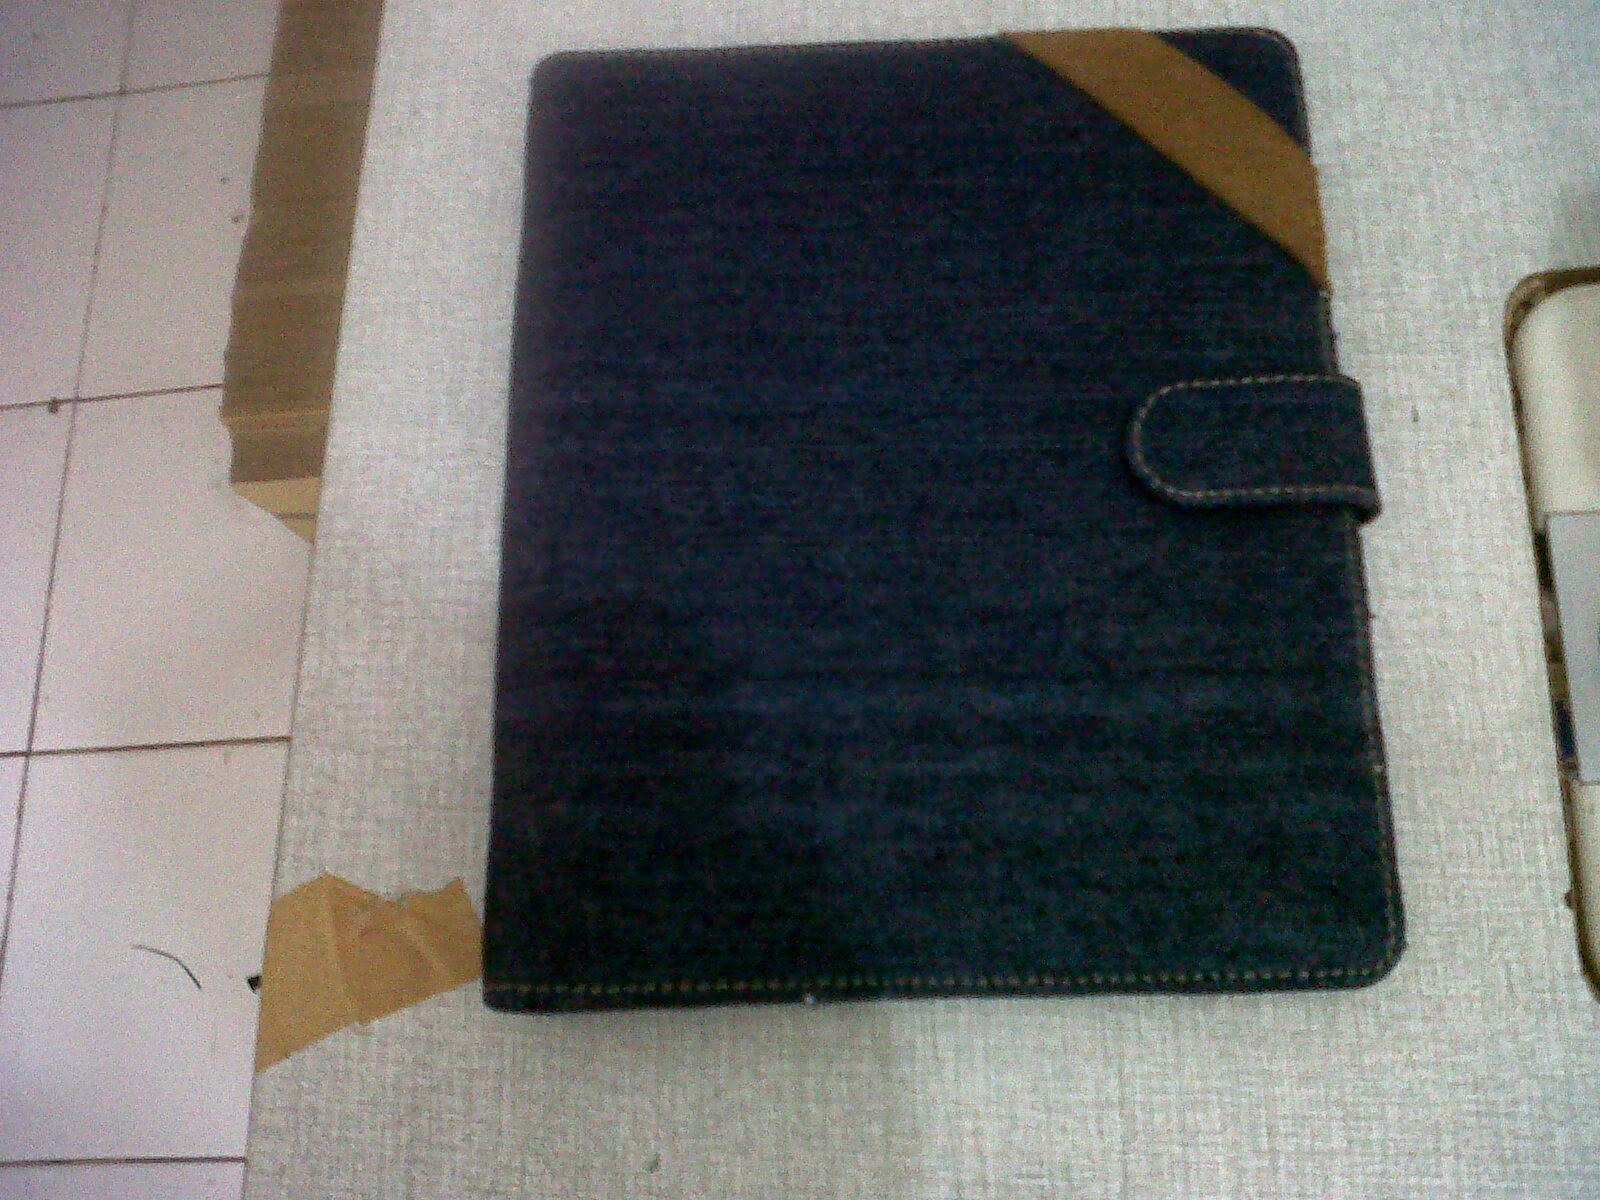 cover agenda bahan jeans